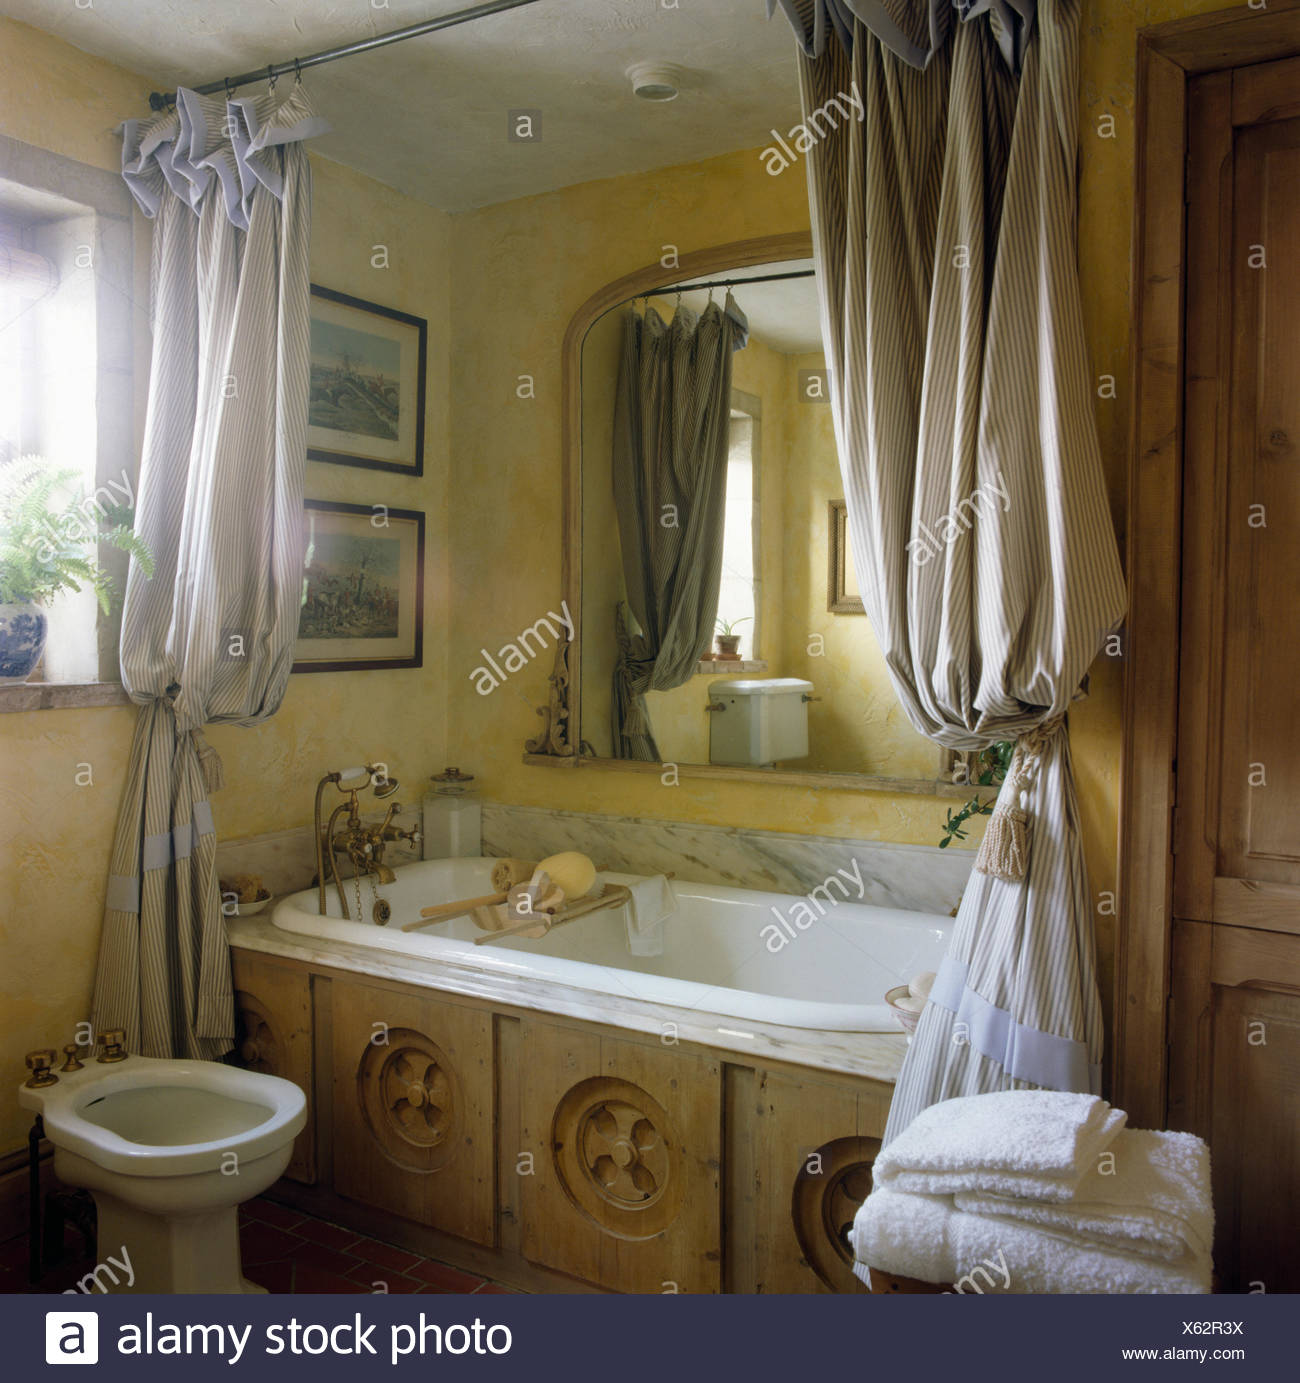 Tenda per vasca da bagno. Striped Shower Curtains On Bath With Reclaimed Carved Wood Panel In Eighties Bathroom With A Bidet Stock Photo Alamy